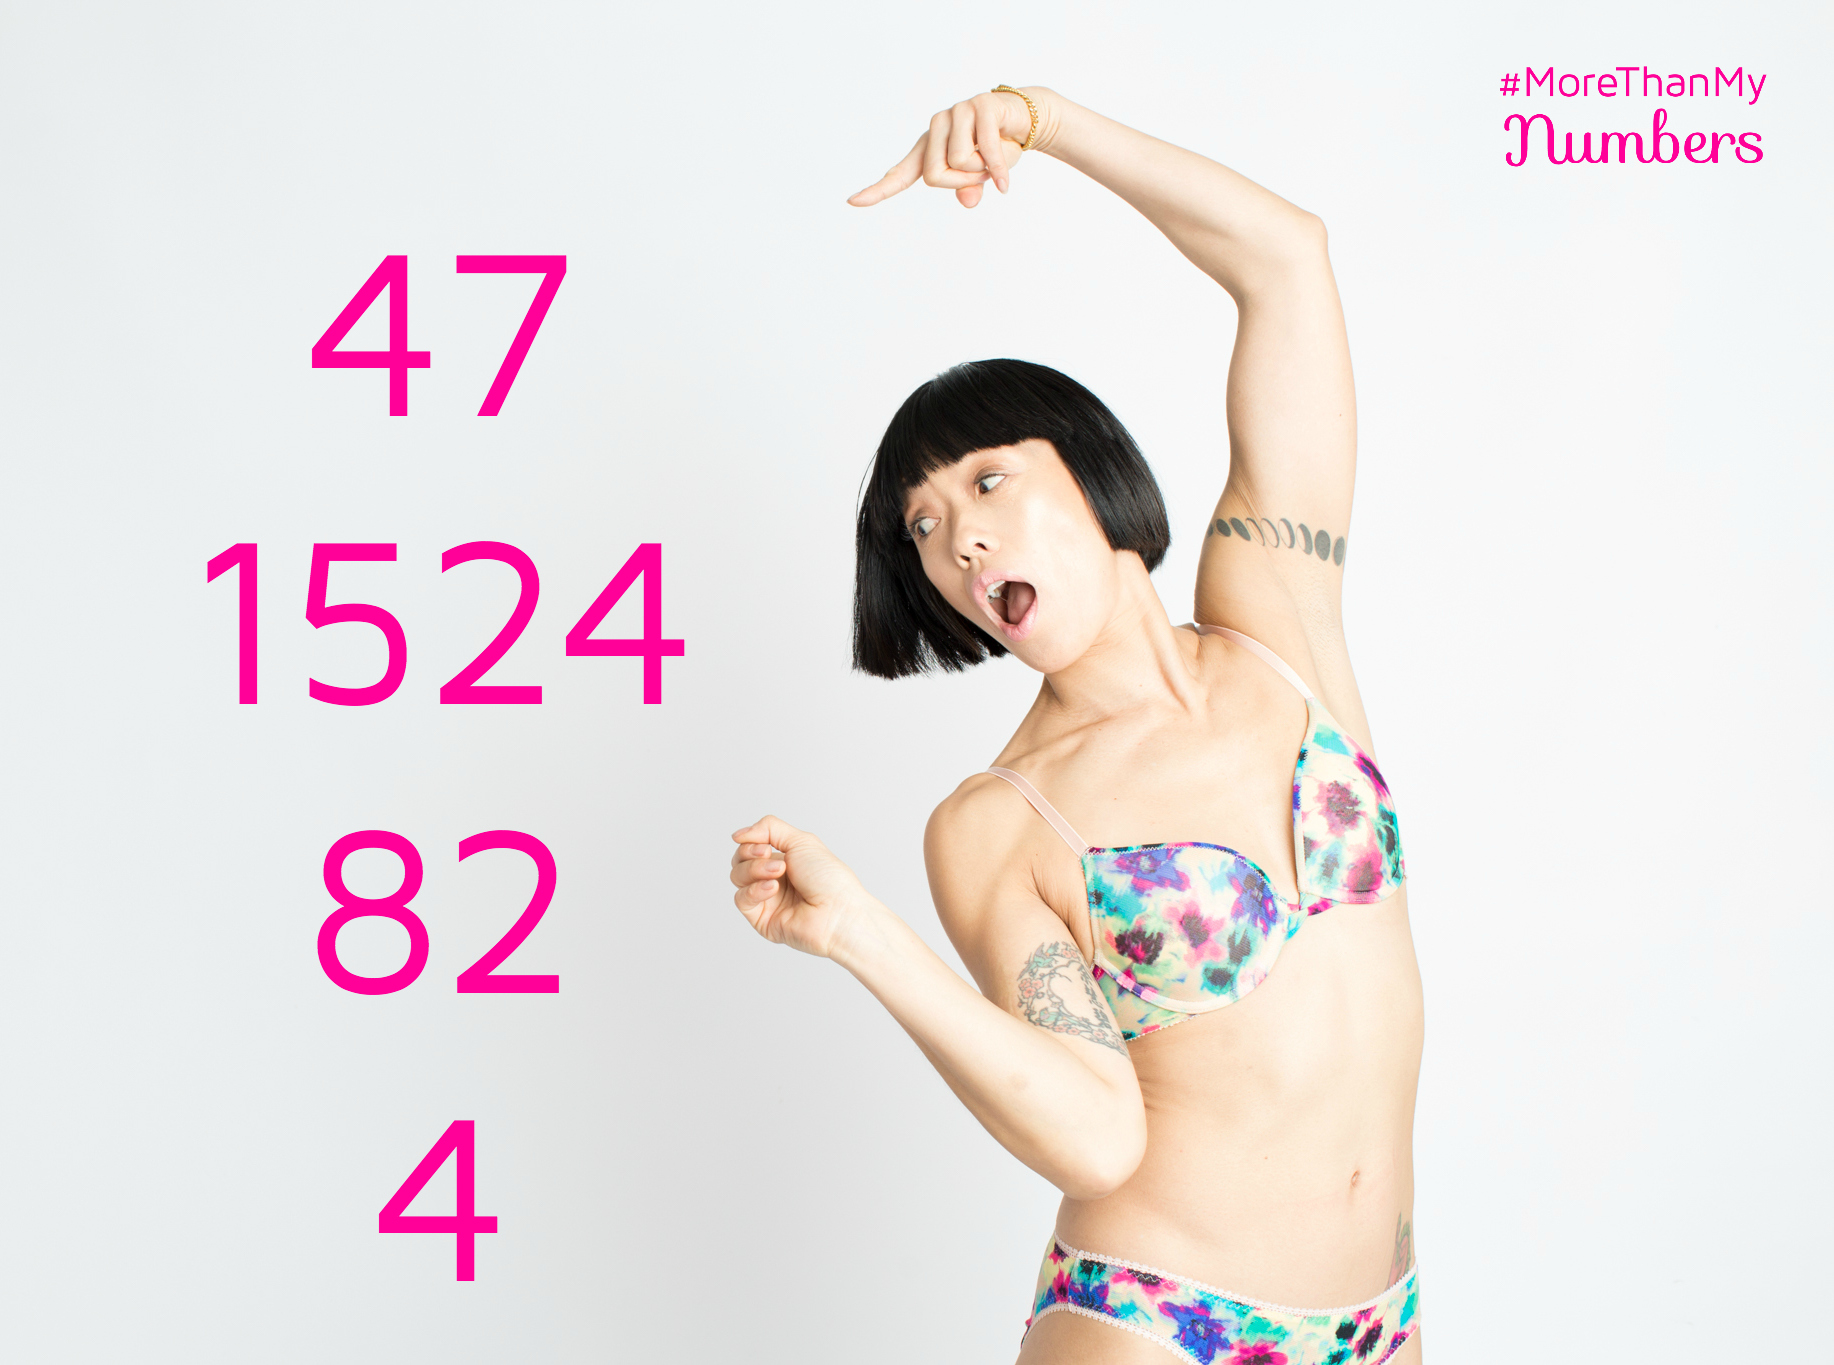 Becky and her numbers in More Than My Numbers Campaign